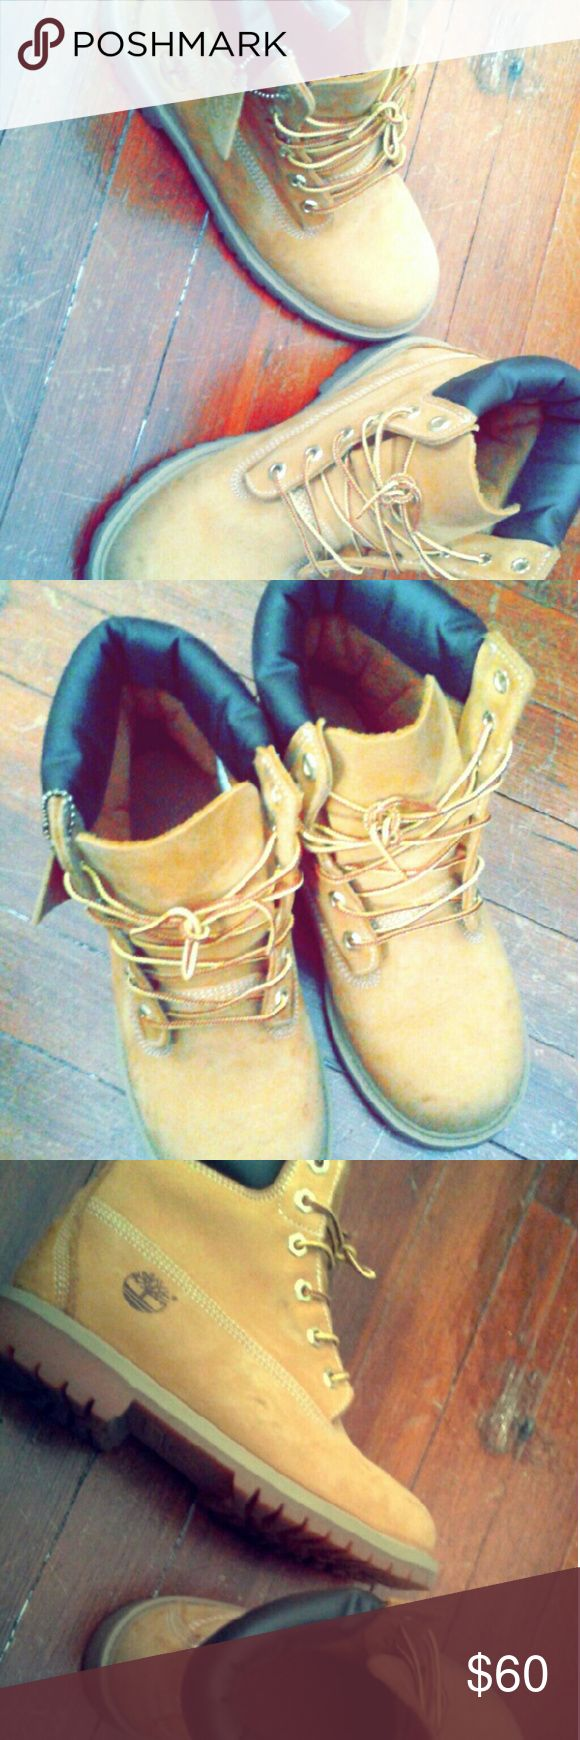 Timberland boots Great condition boots, normal wear on them. A few marks that can be removed with boot cleaner and they'll look brand new. 6Y kids. Timberland Shoes Lace Up Boots